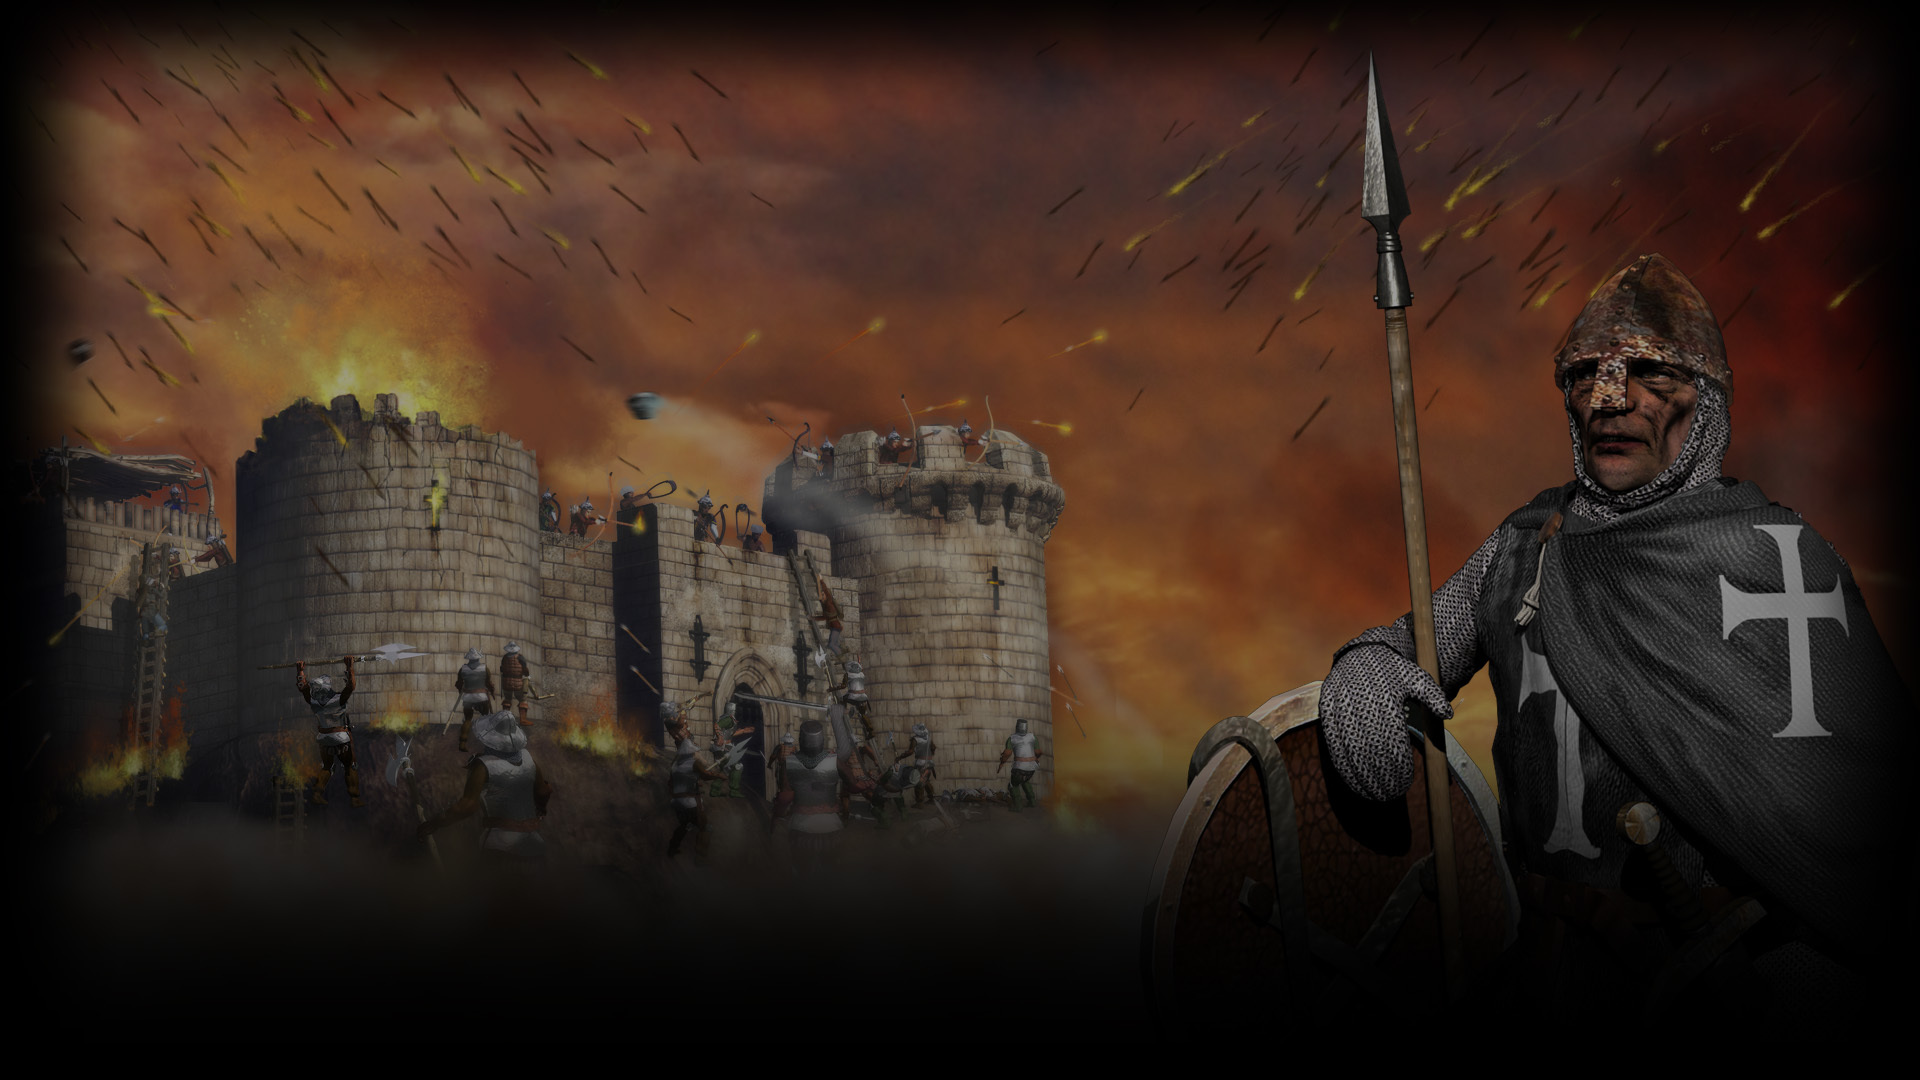 crusader wallpapers pictures photos - photo #44